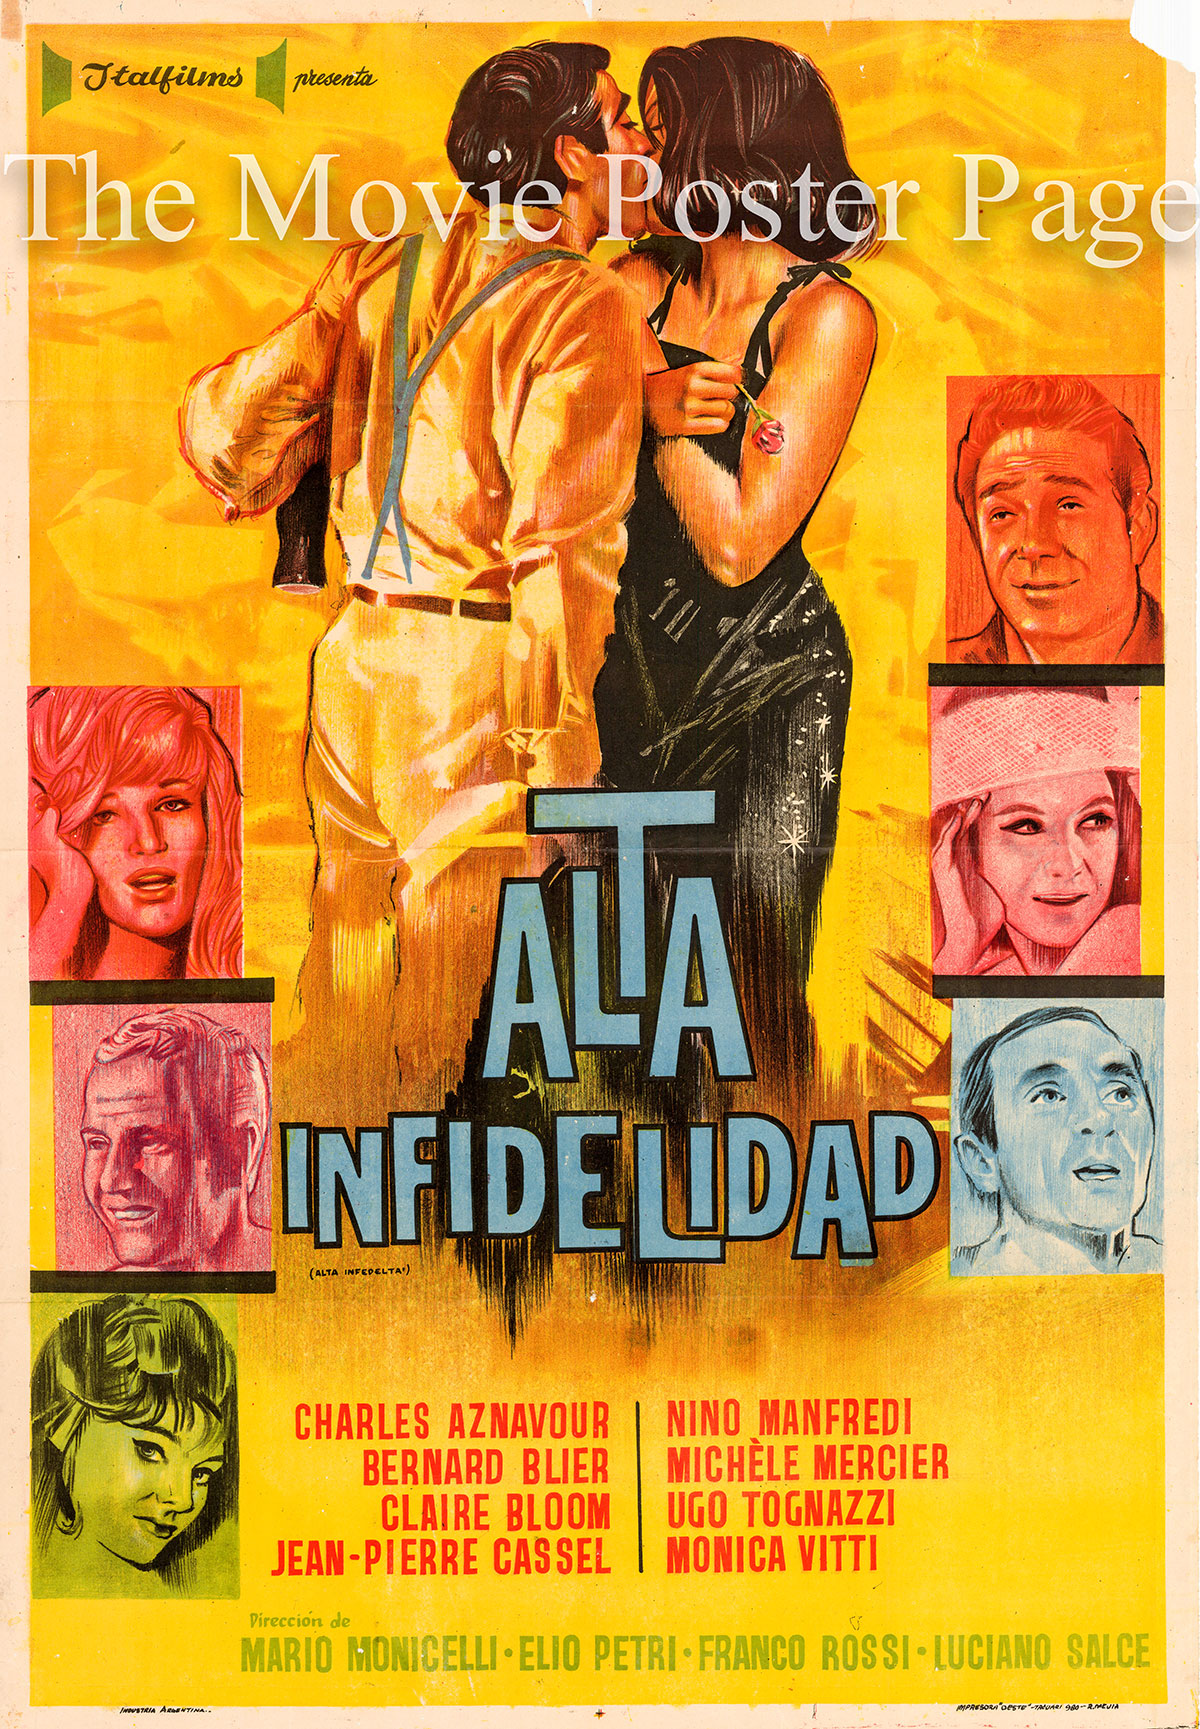 Pictured is an Argentine one-sheet poster for the 1964 Mario Monicelli film High Infidelity starring Charles Aznavour.